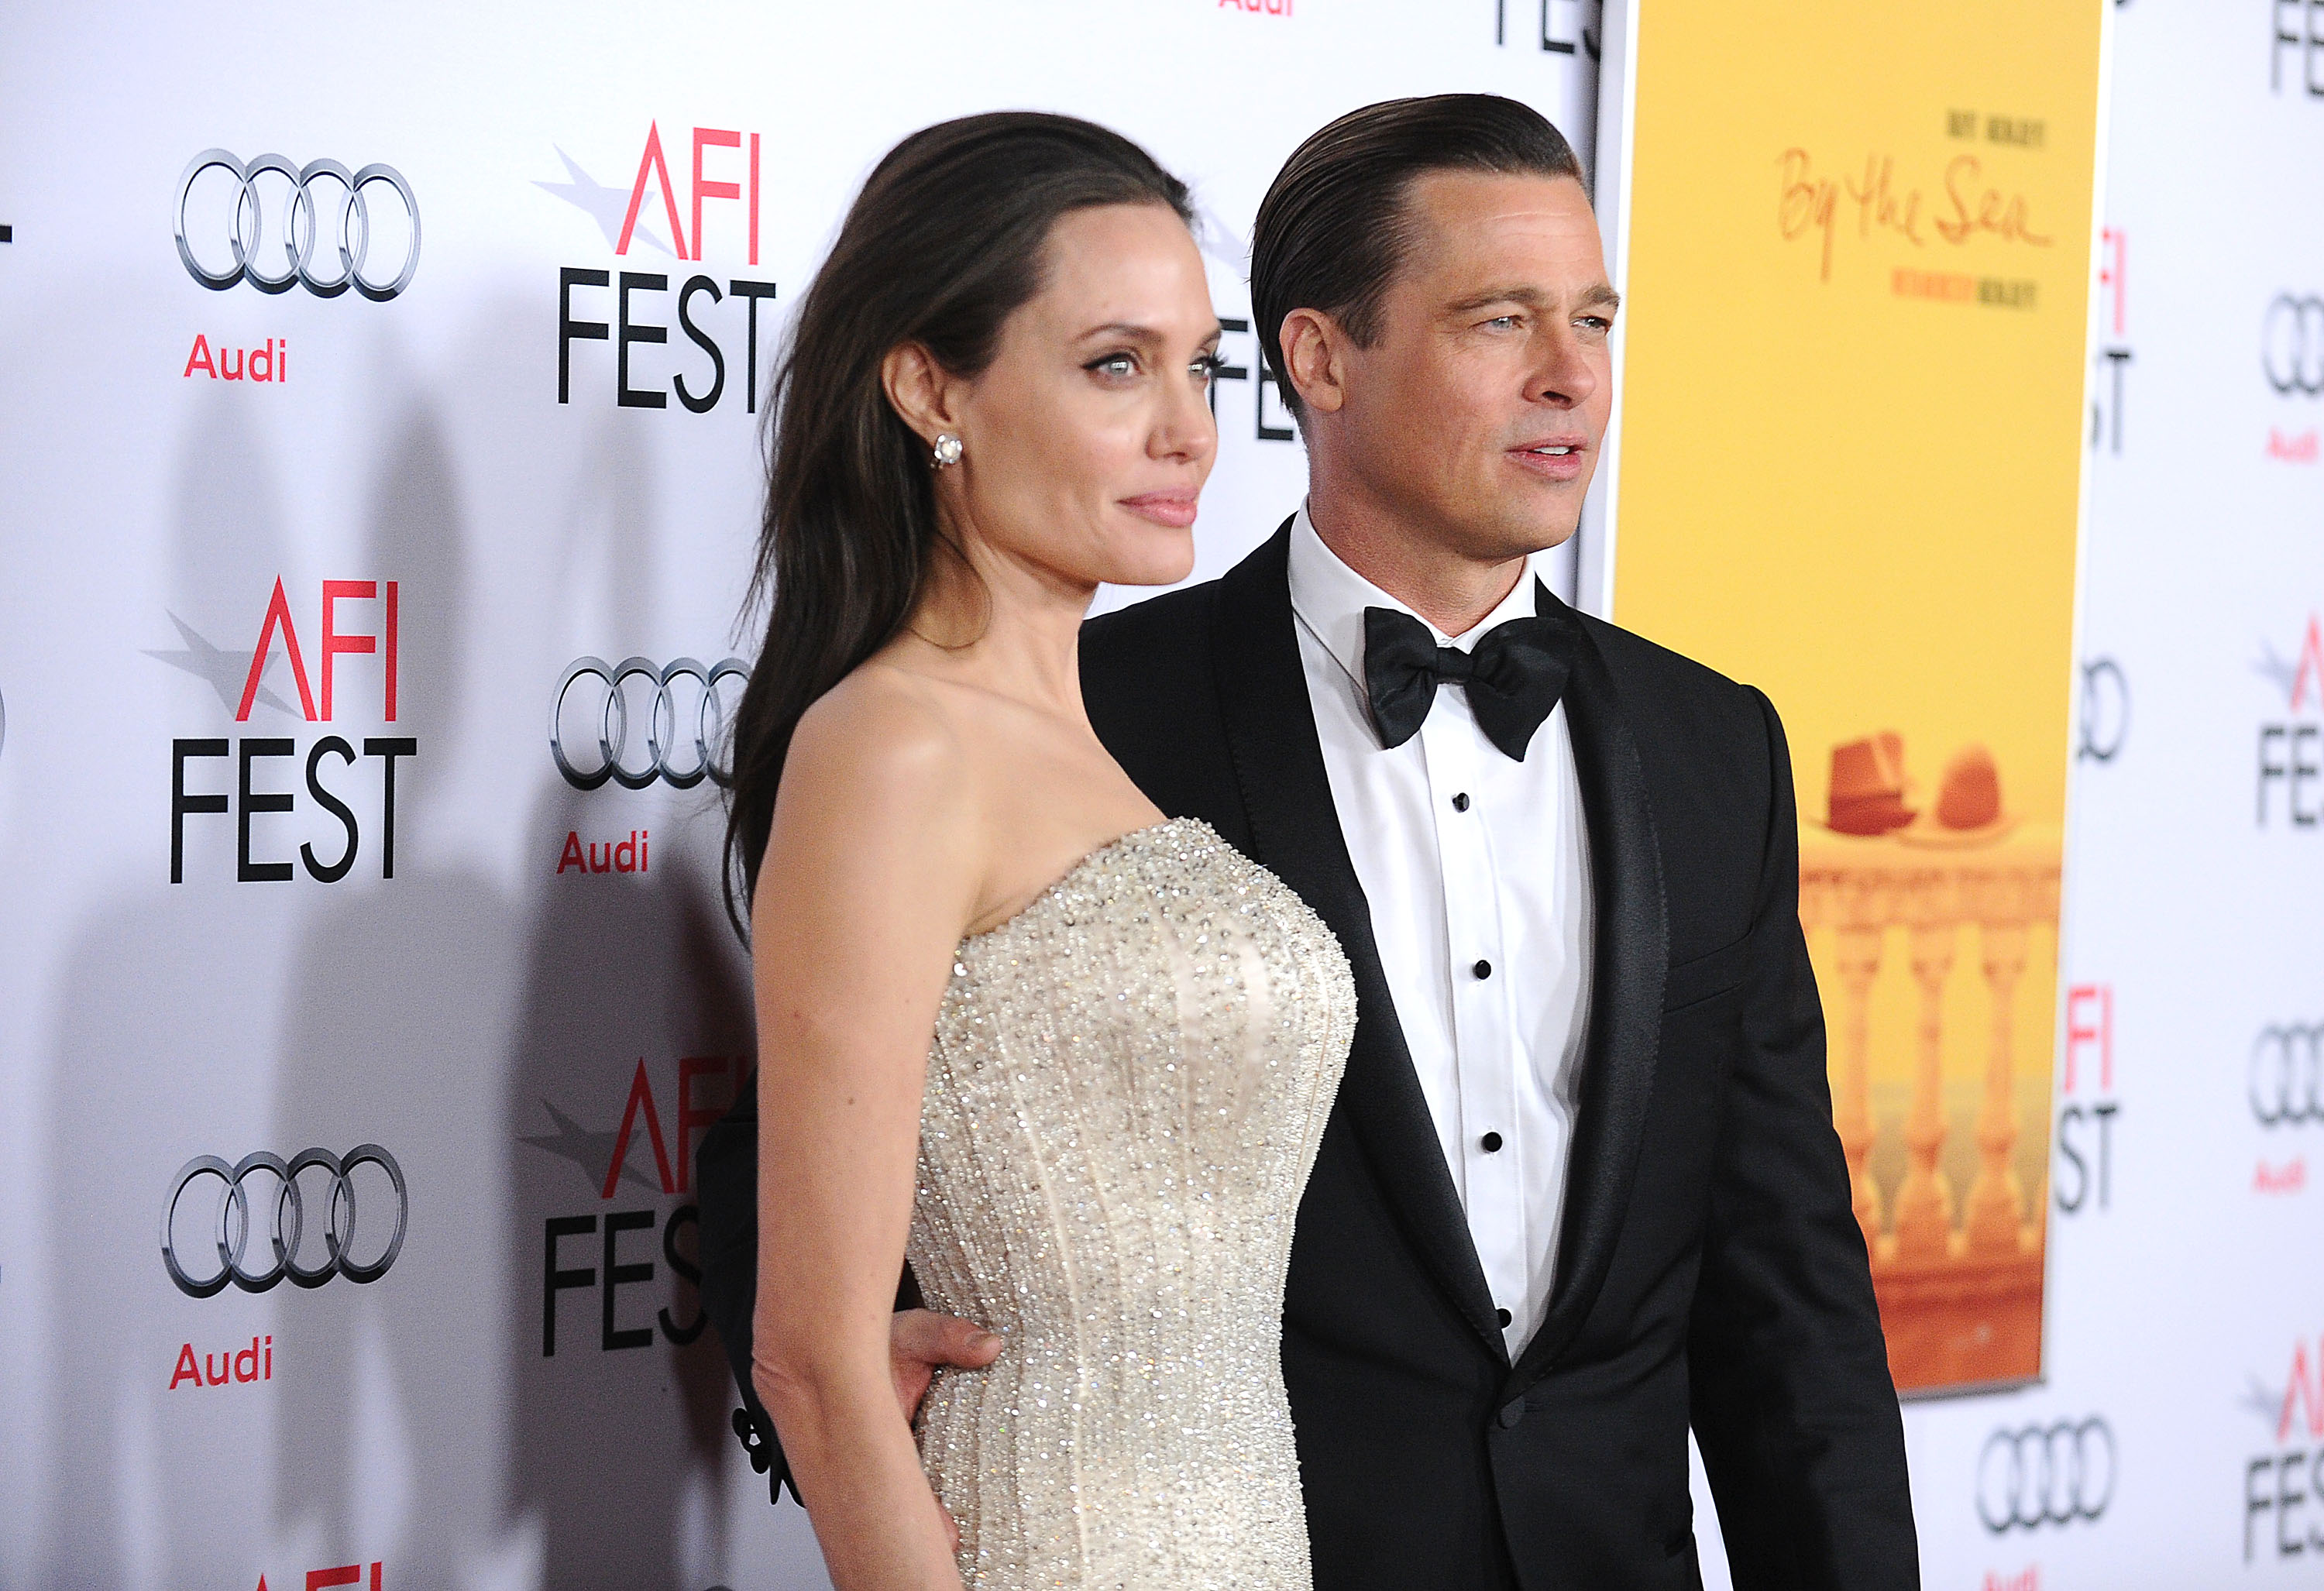 This Angelina Jolie and Brad Pitt news makes us hopeful